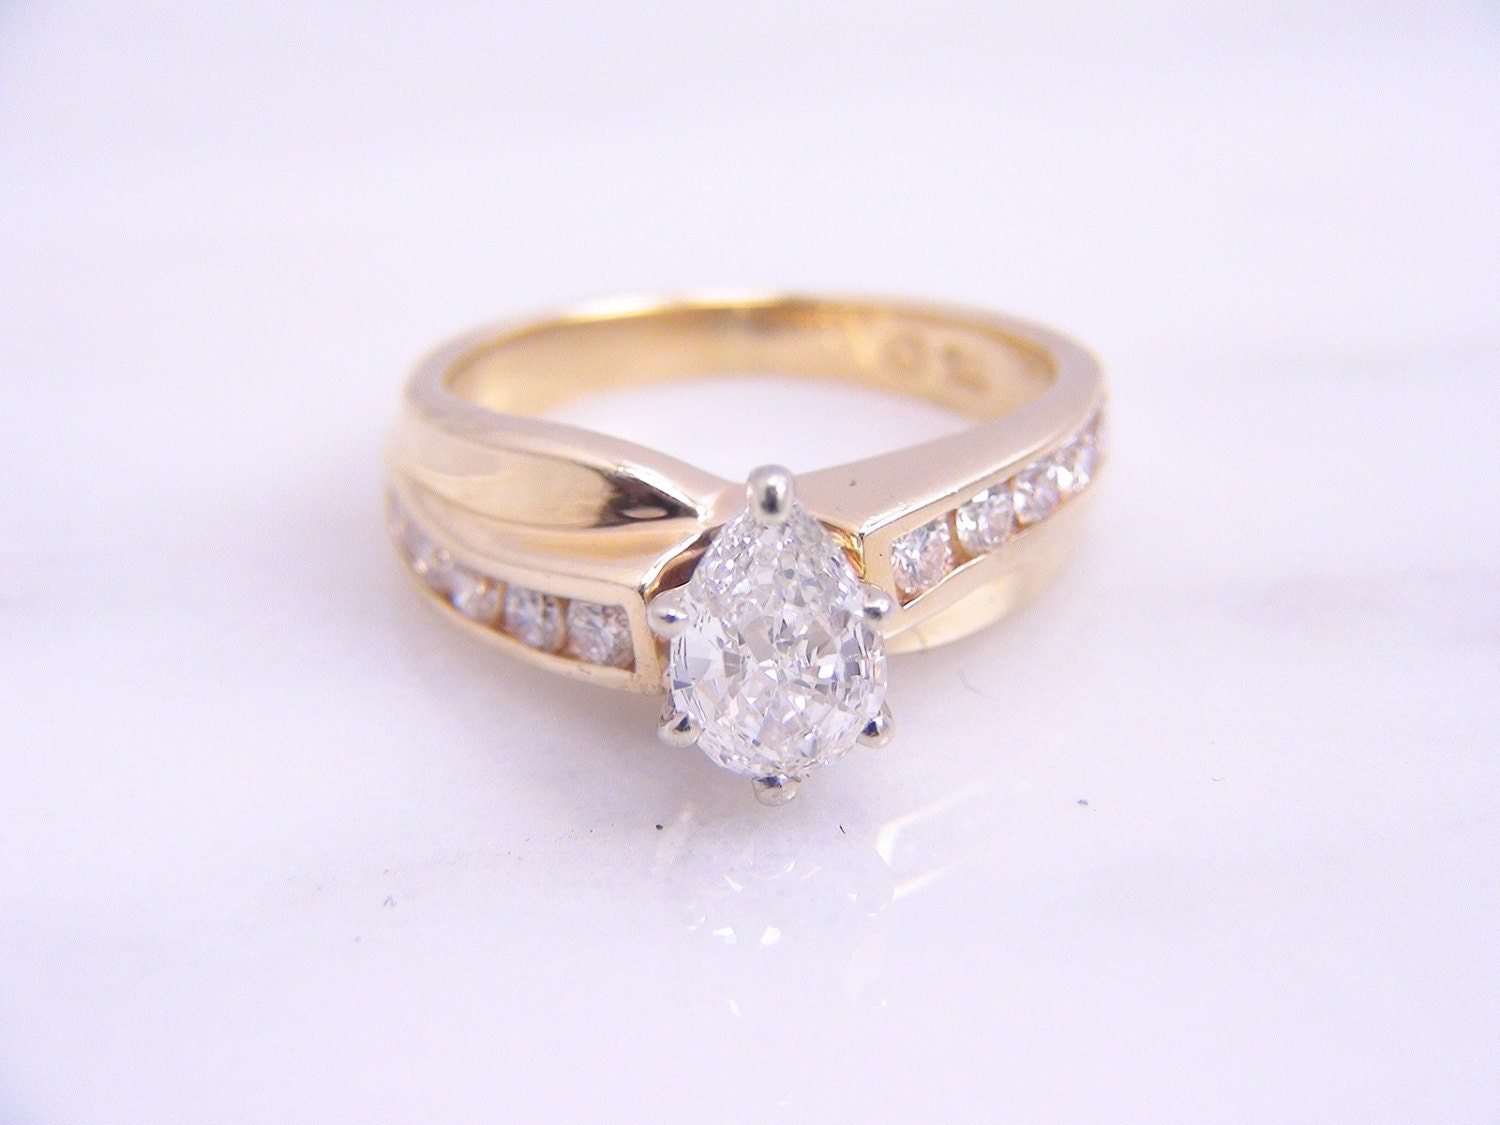 CLEARANCE Vintage Pear Shaped Diamond Engagement Ring 14K